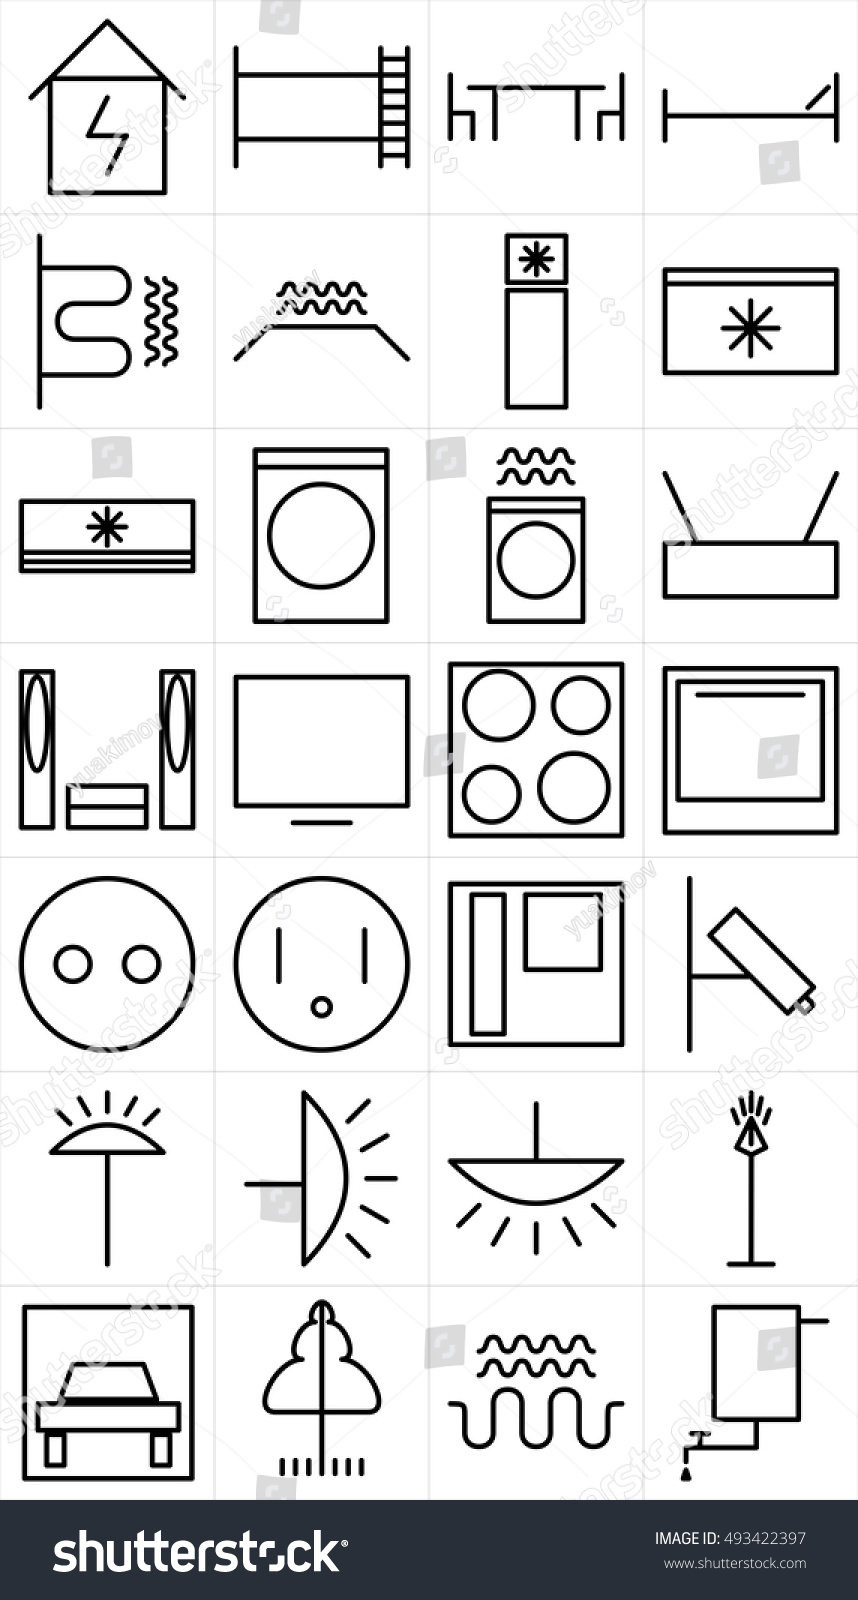 Set Black White Symbols Home Appliance Stock Vector 493422397